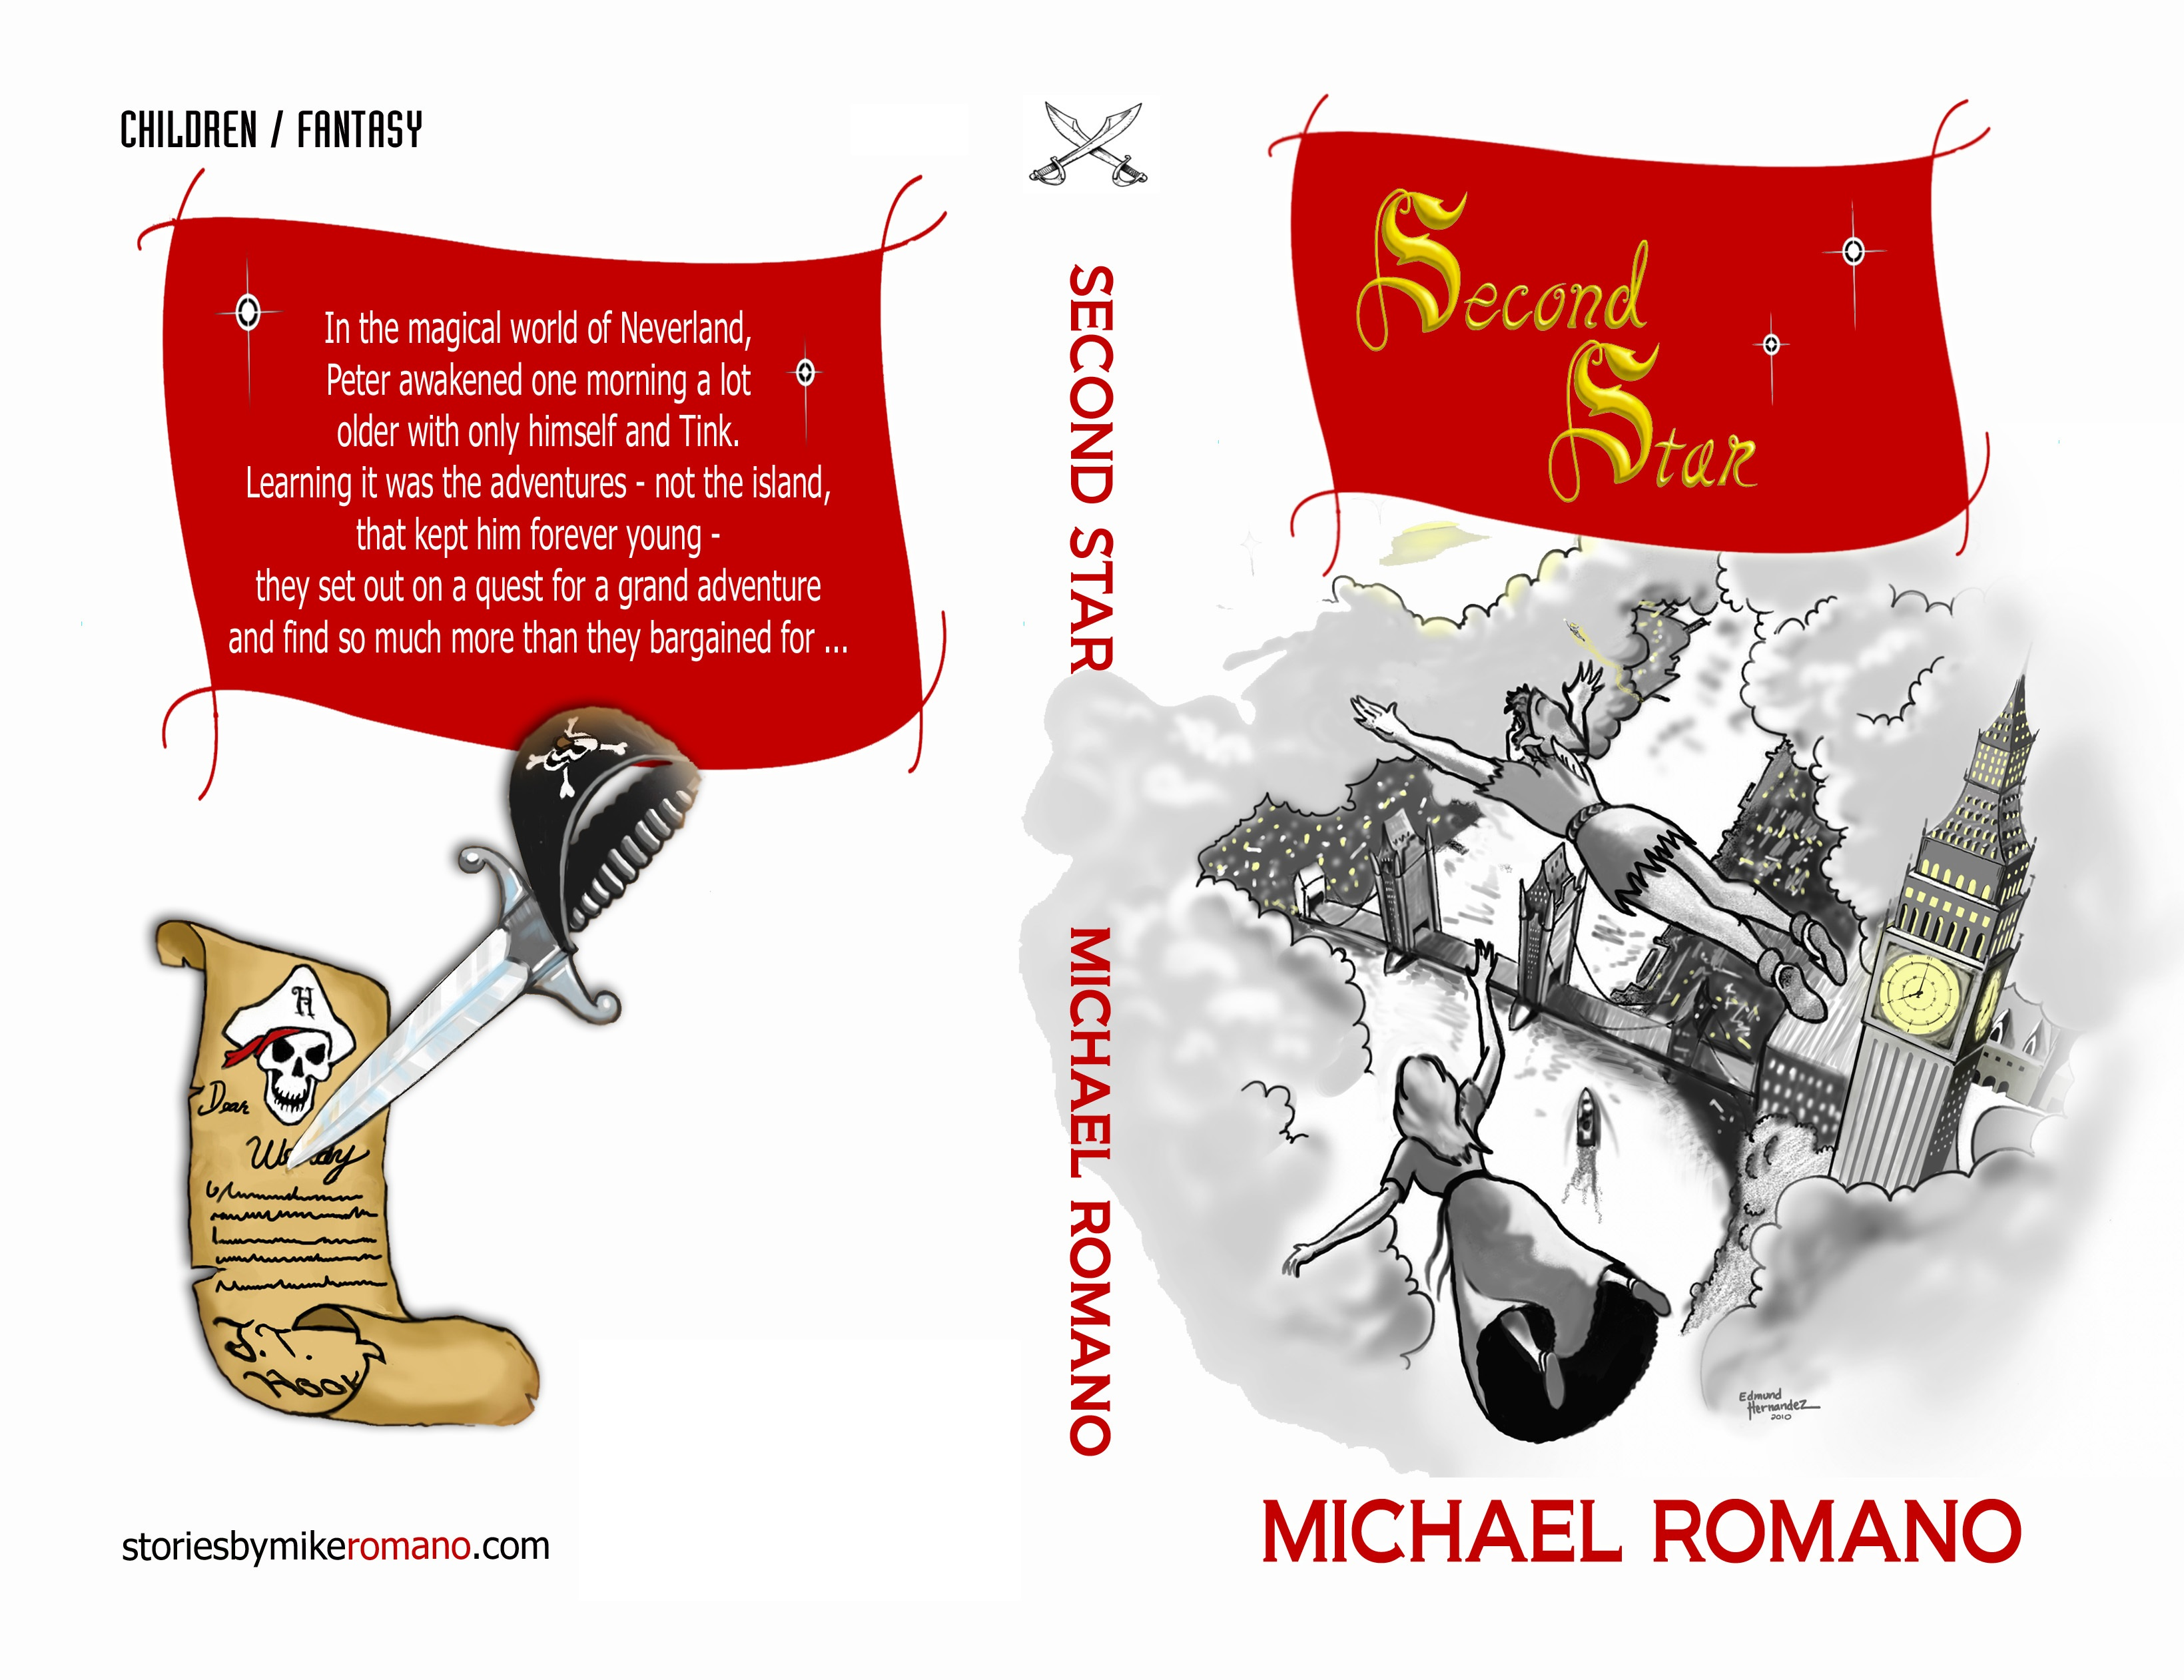 SECOND STAR NOW AVAILABLE ON KINDLE AND AMAZON AND FLOREY'S BOOKS